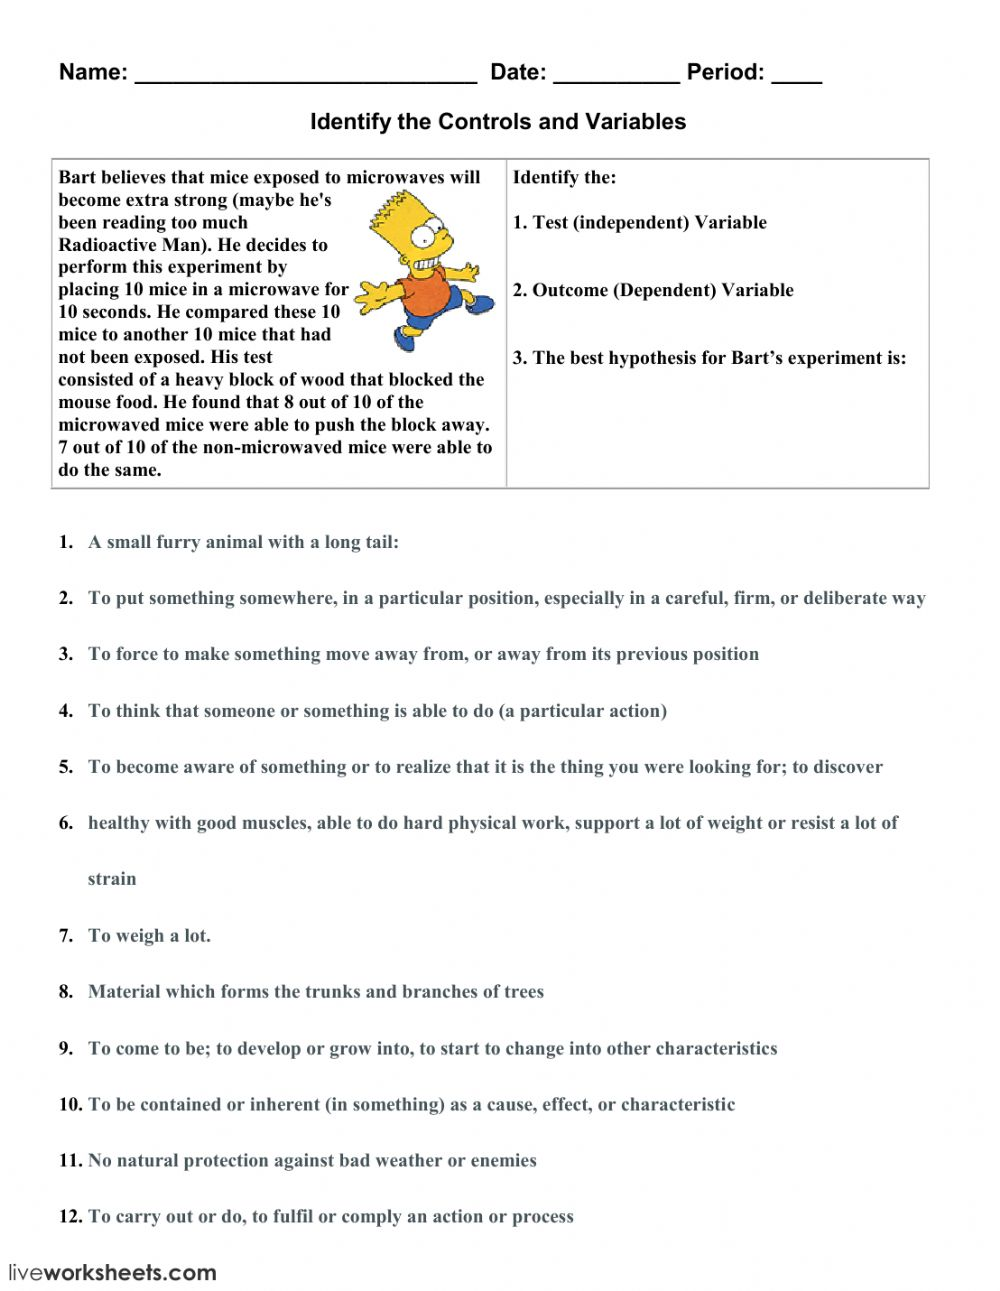 Identify the Controls and Variables-1 - Interactive worksheet